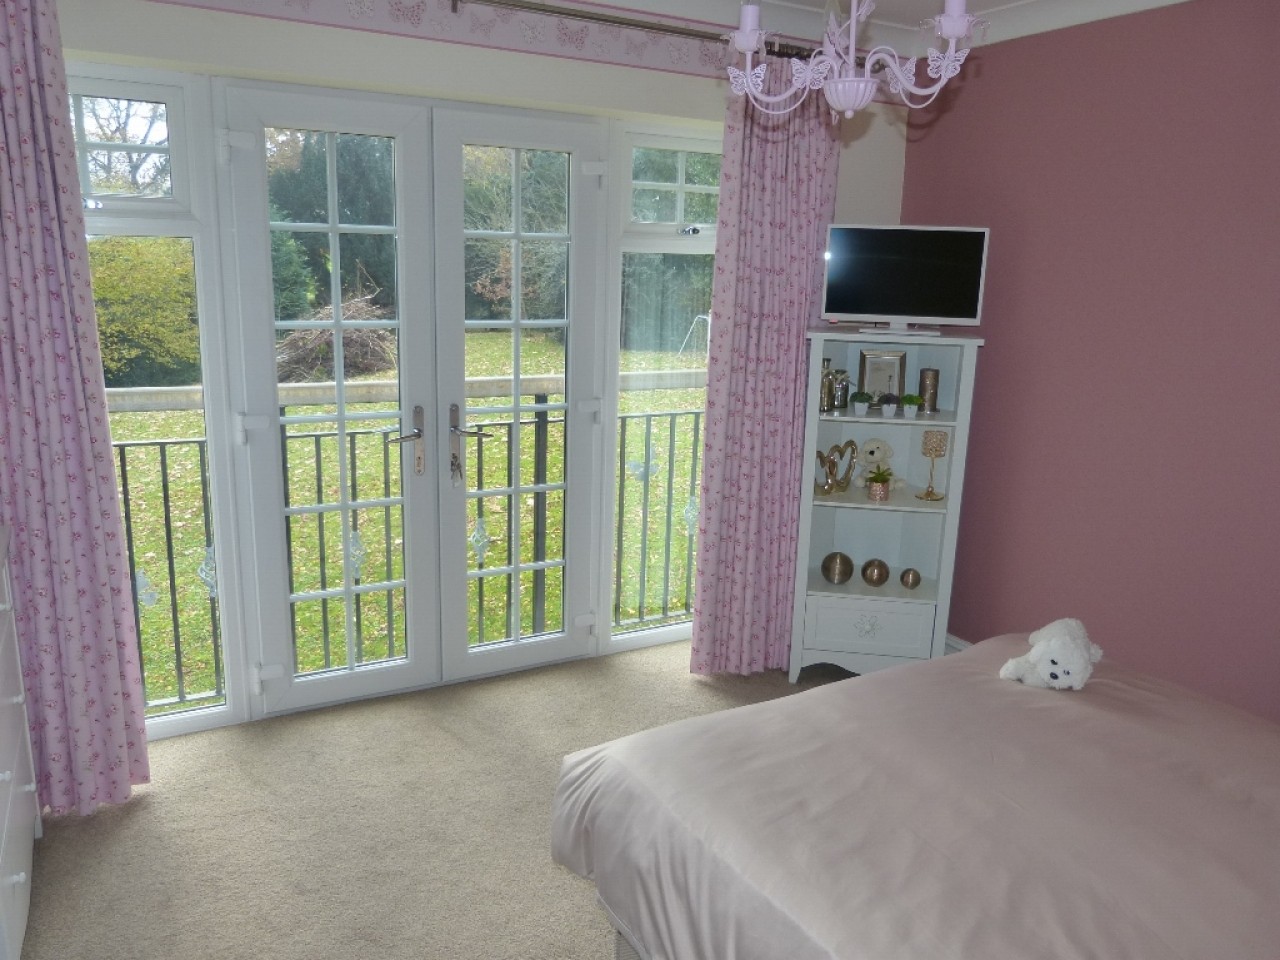 5 bedroom detached house SSTC in Abergele - Photograph 18